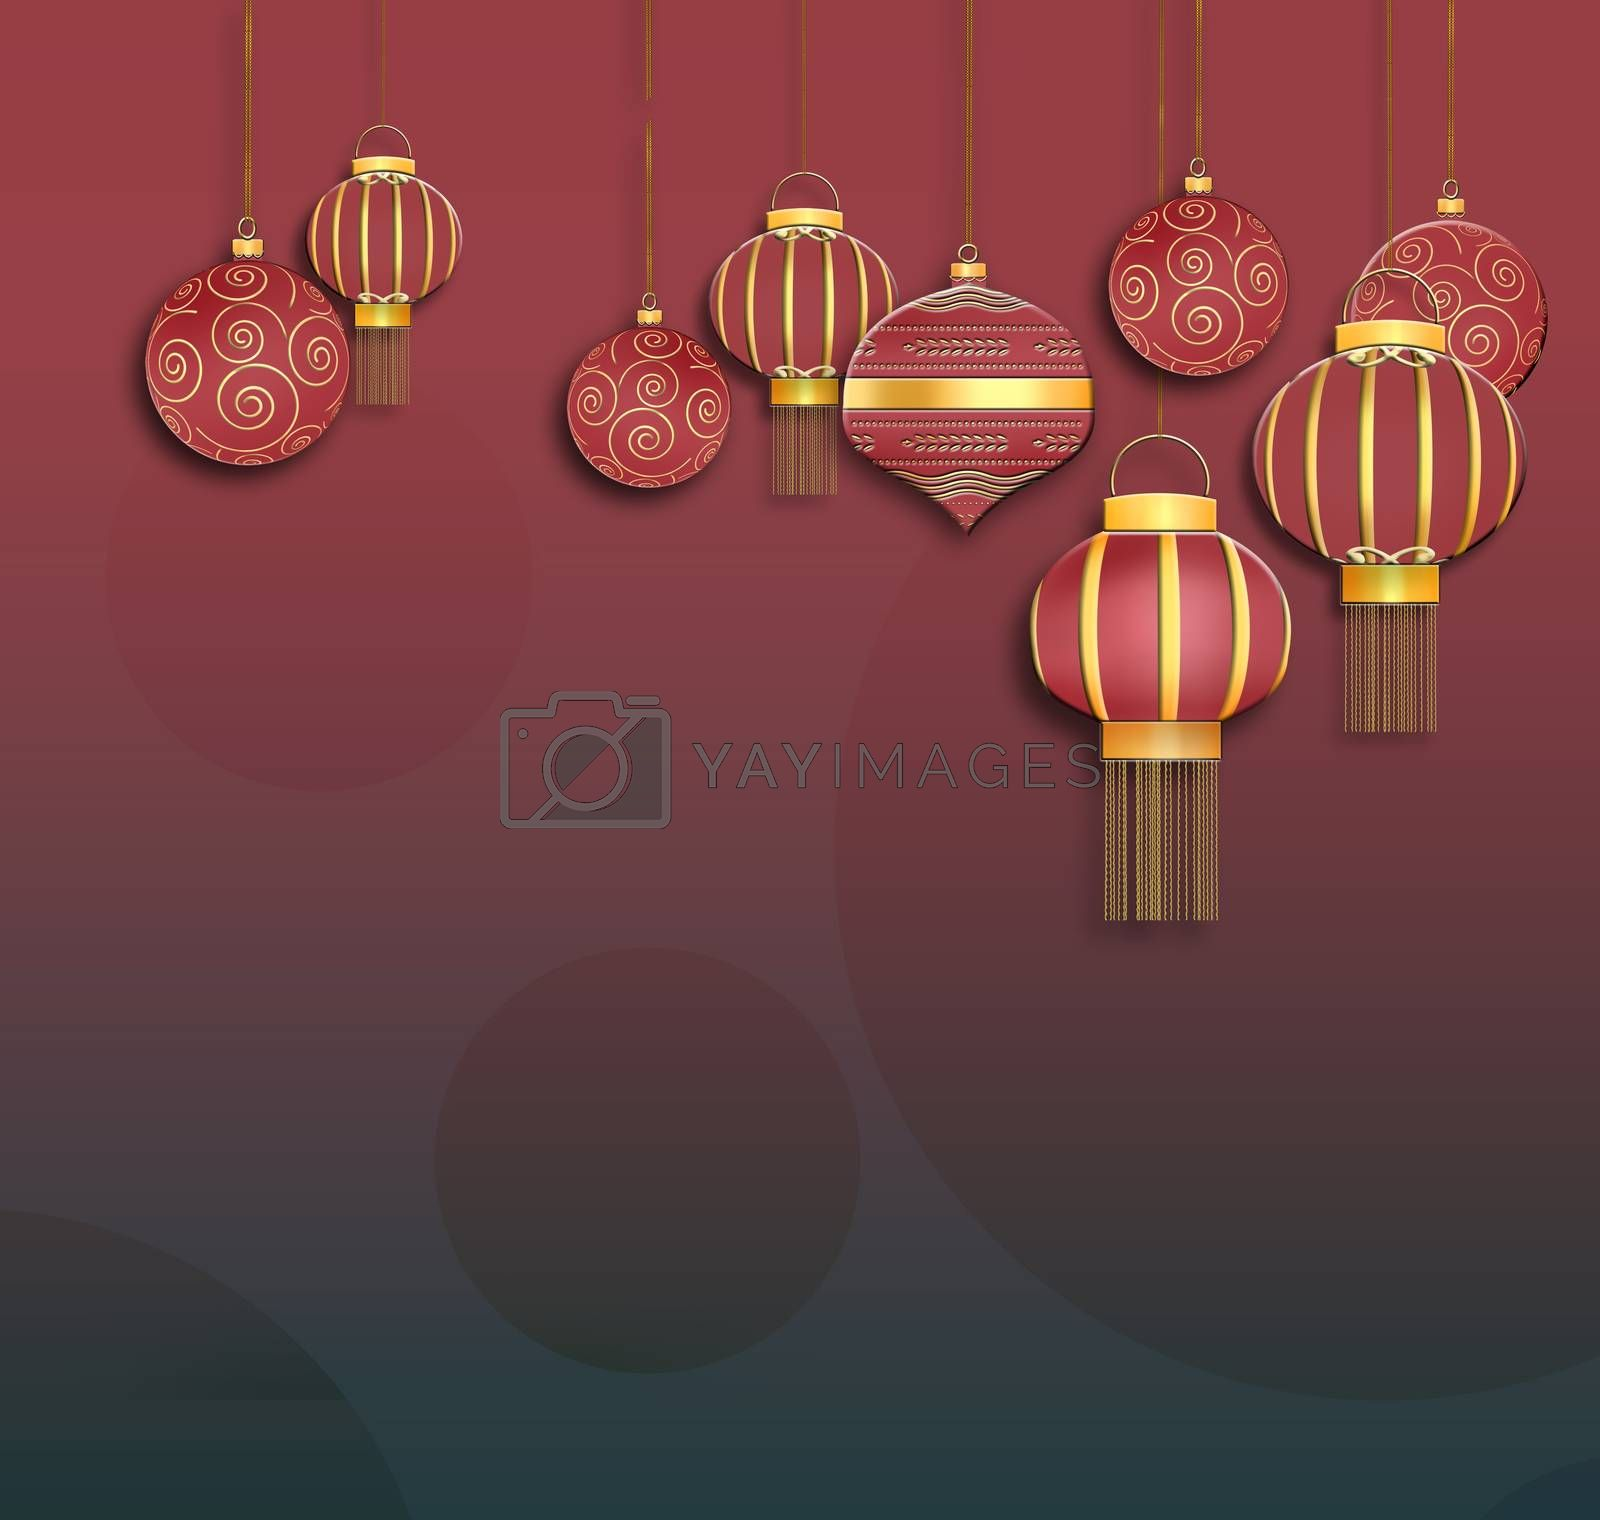 Christmas 2021 New Year Background with hanging red balls and lanterns with gold ornament on red background. Place for text. 3D illustration